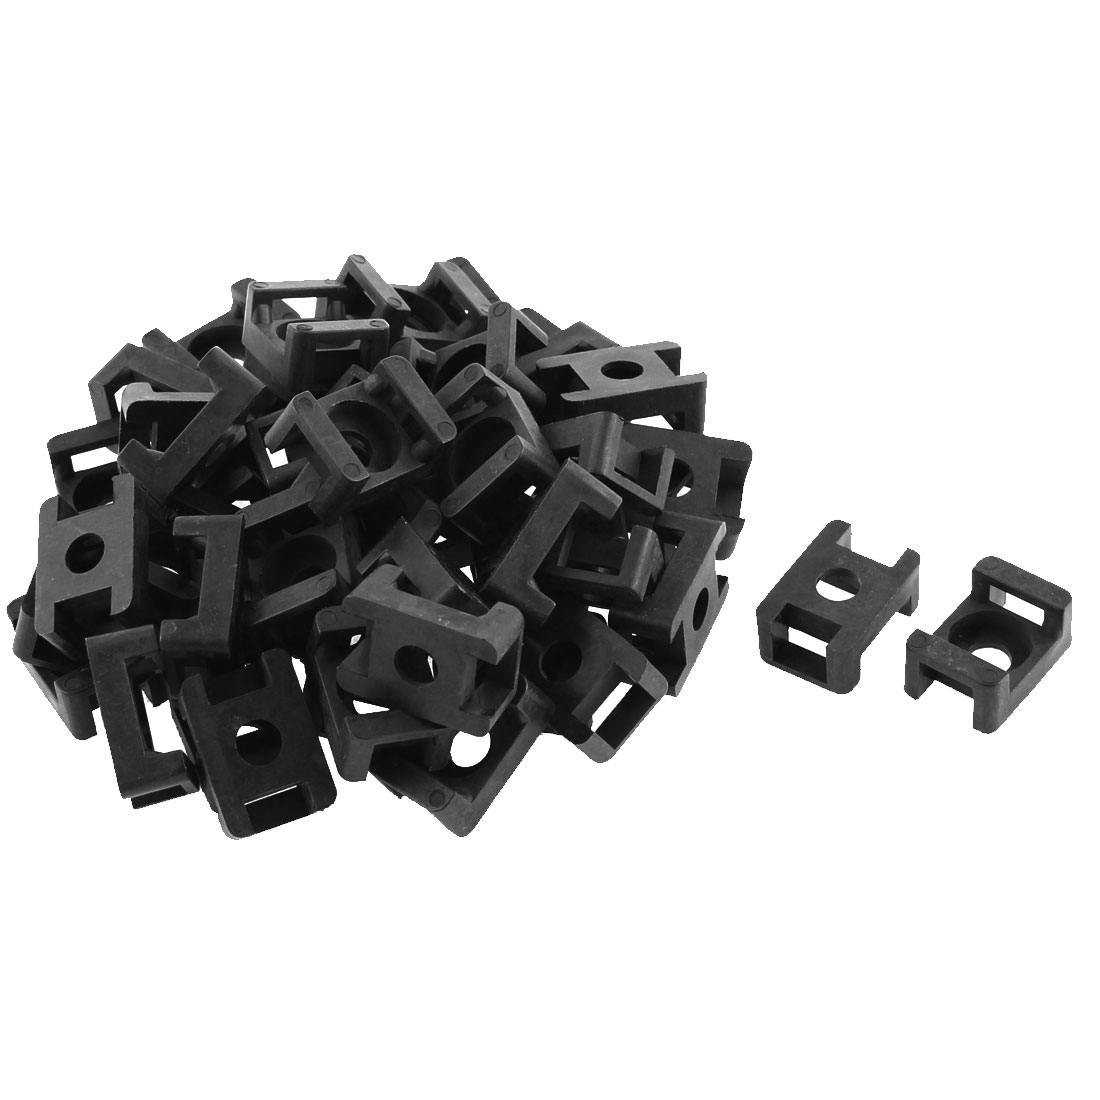 48pcs 9mm Black Plastic Wire Buddle Saddle Type Screw Fixed Cable Tie Mount Holder Base Socket